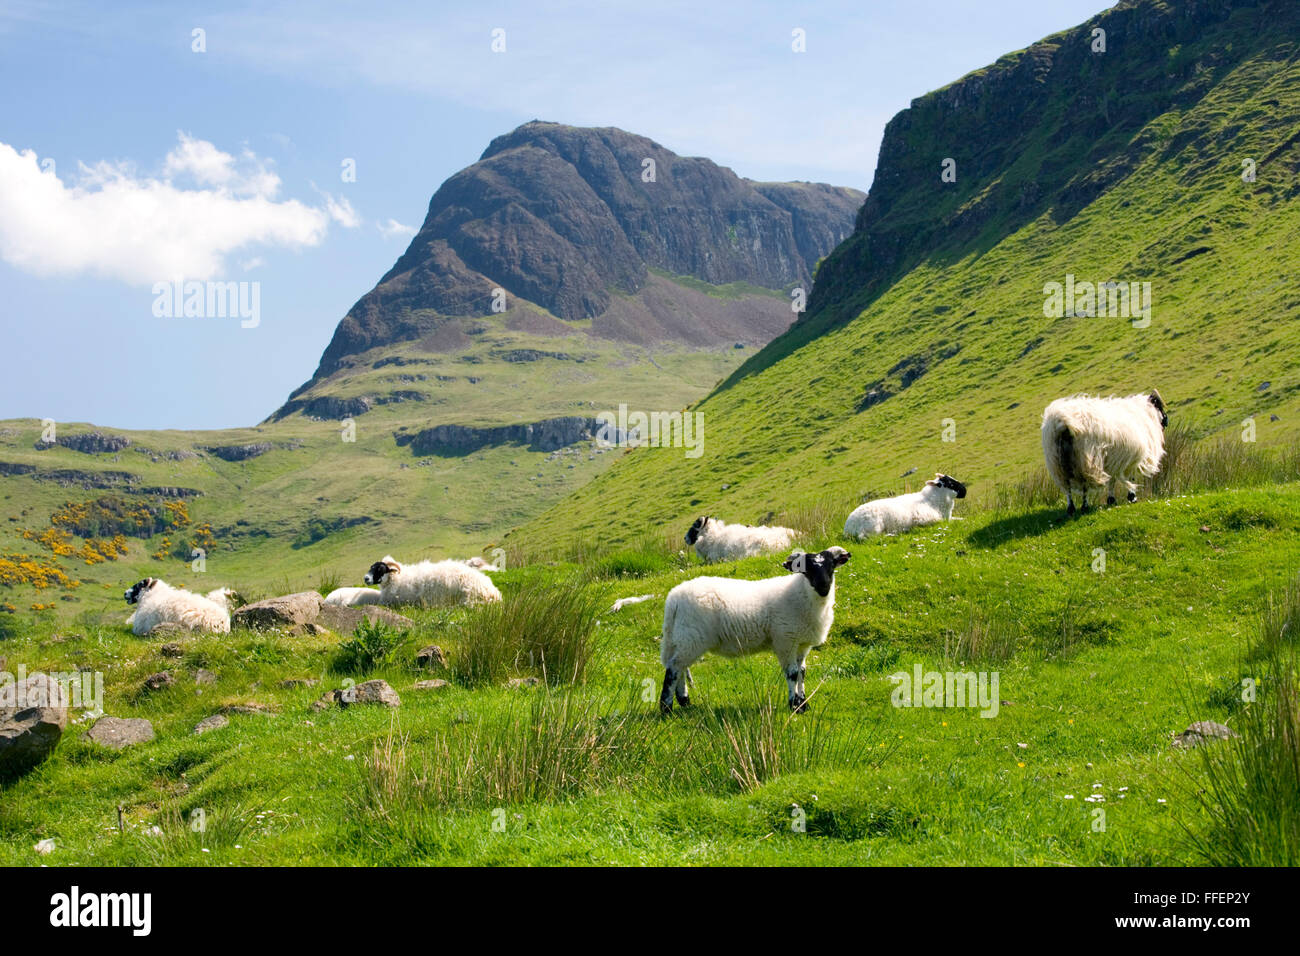 Carbost, Isle of Skye, Highland, Scotland. View along the Talisker Valley to the peak of Preshal More, sheep in foreground. Stock Photo